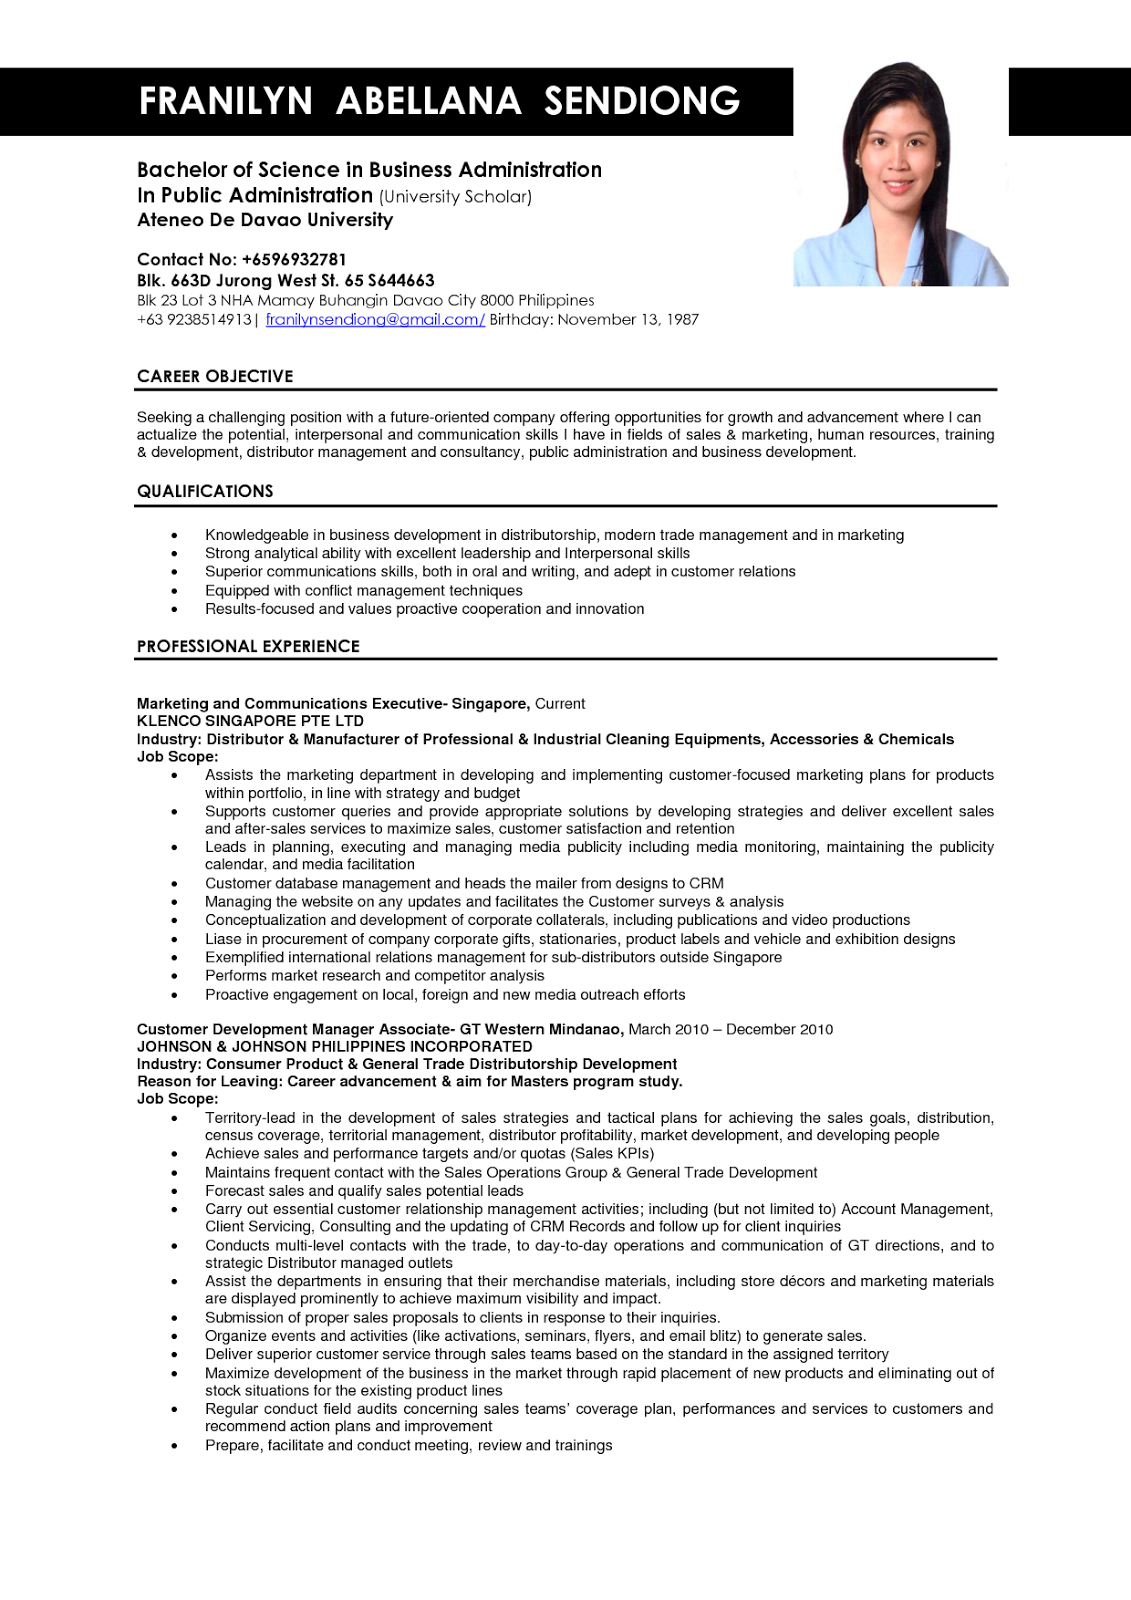 resume sample for us companies